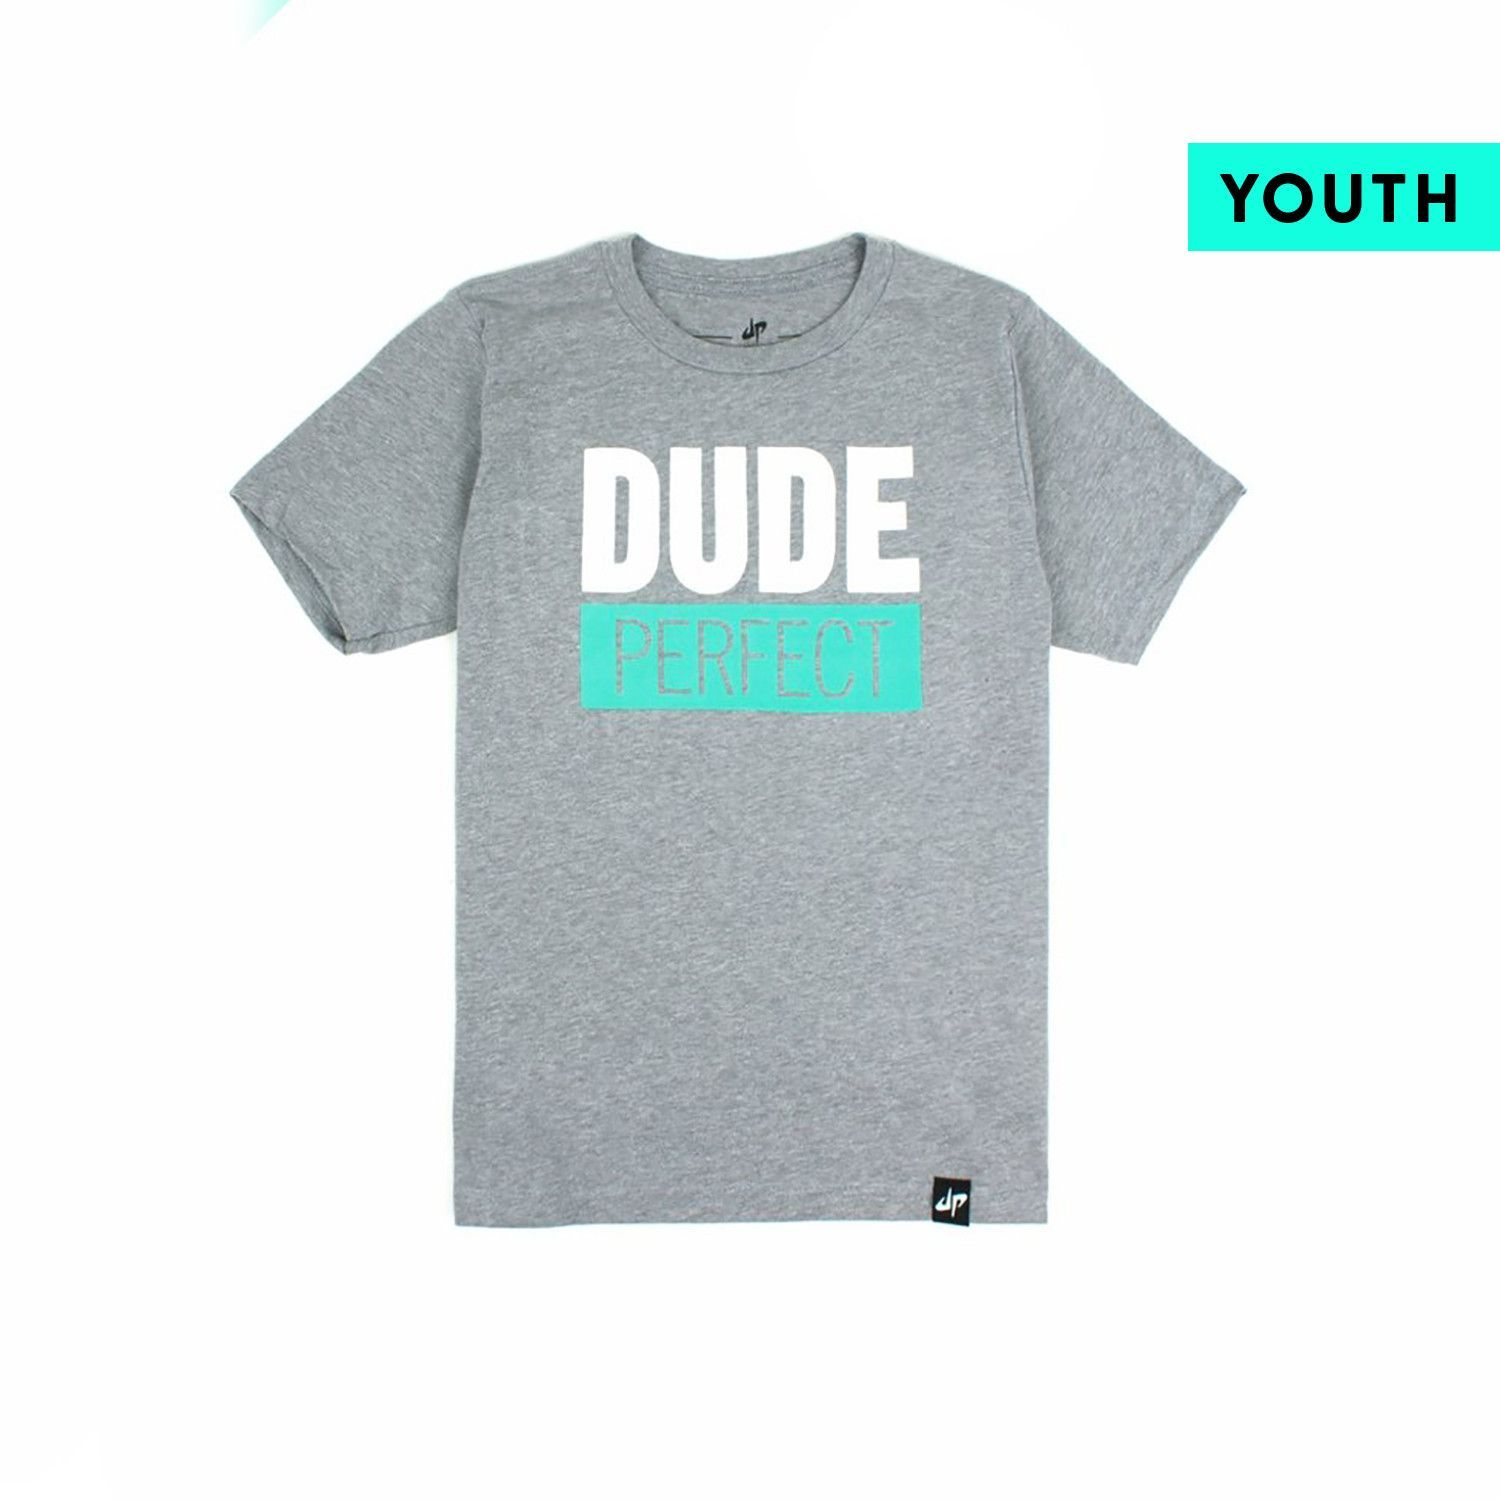 Youth Dude Perfect Epic Shot Tee | Dude perfect and Youth